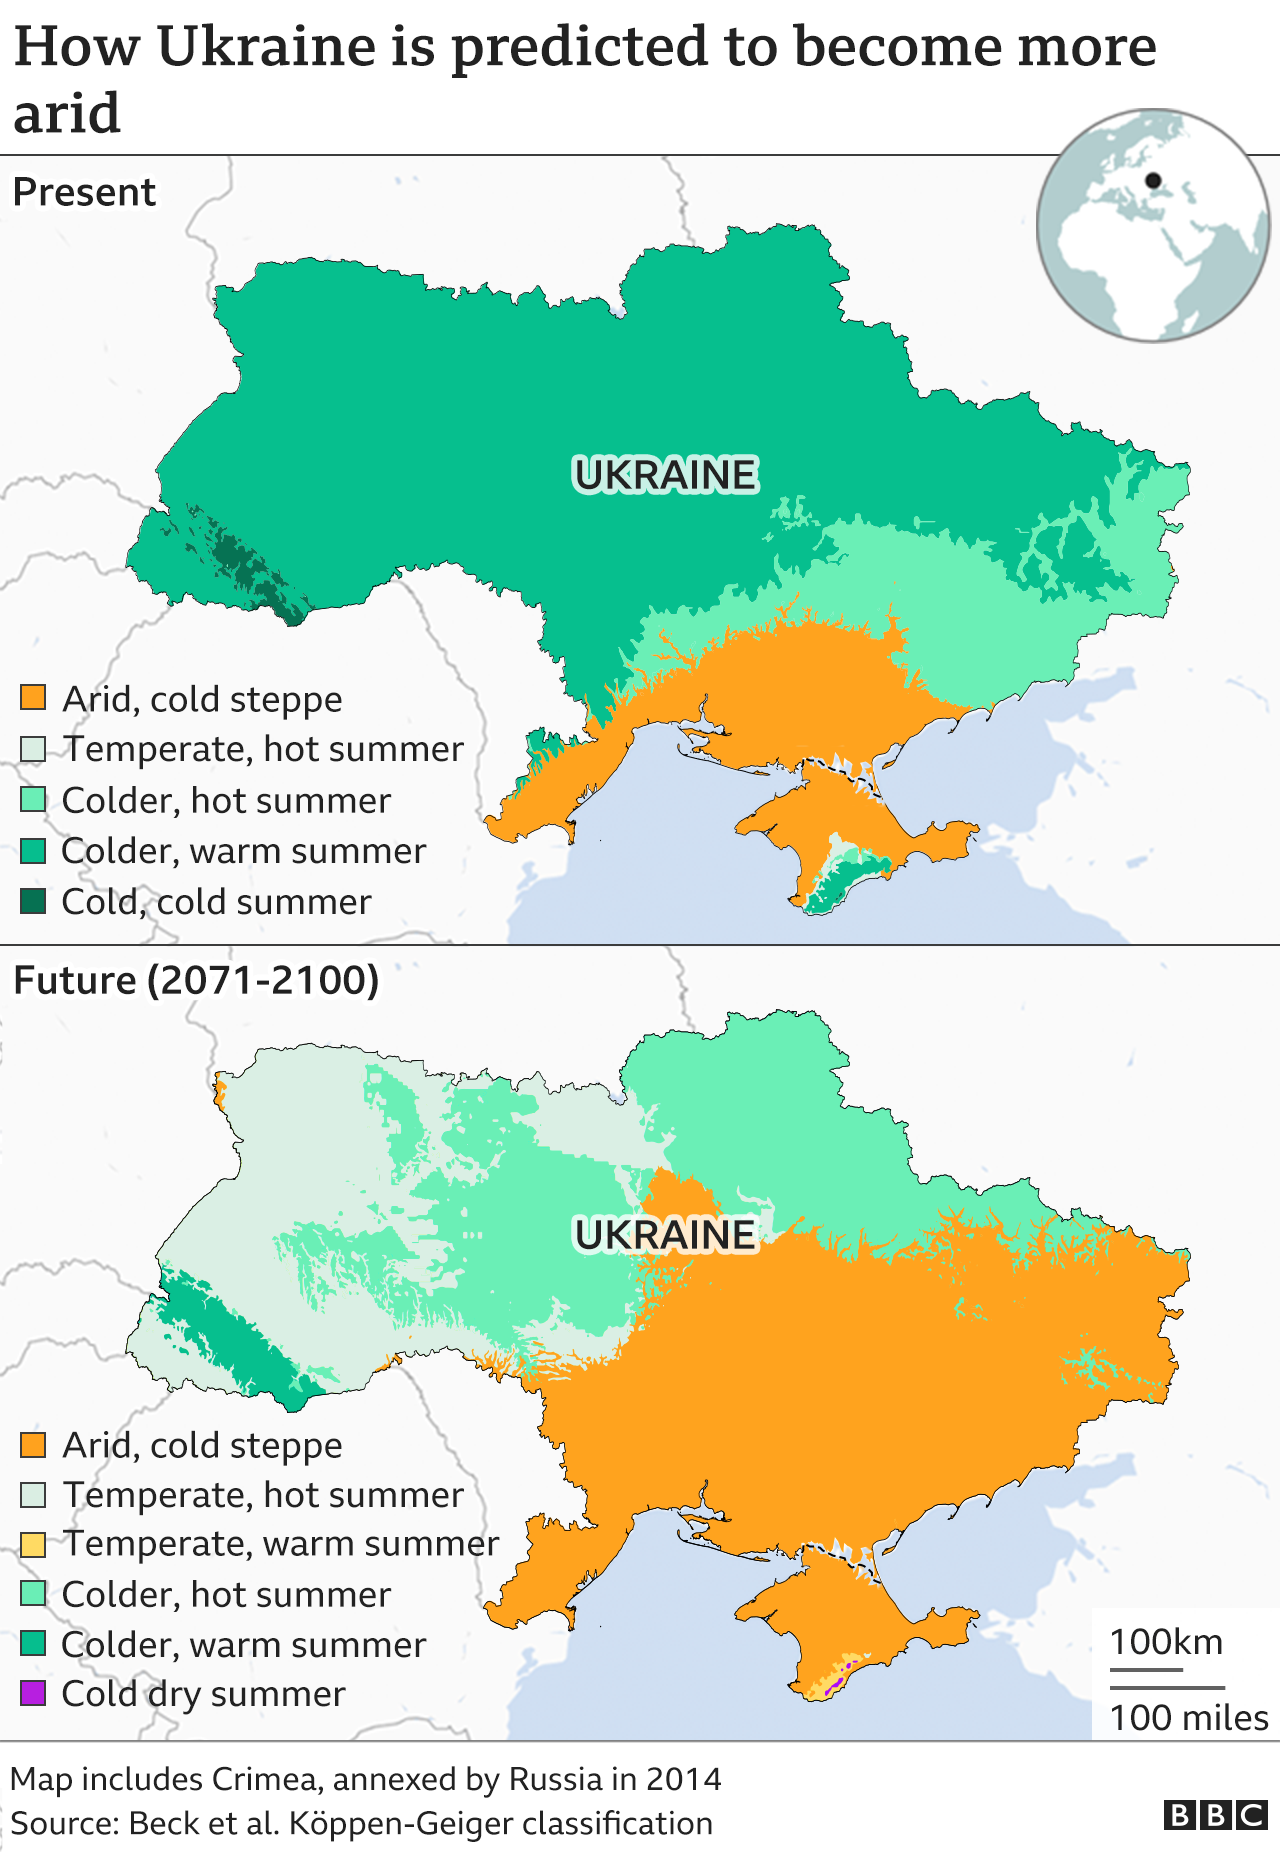 How Ukraine is set to become more arid